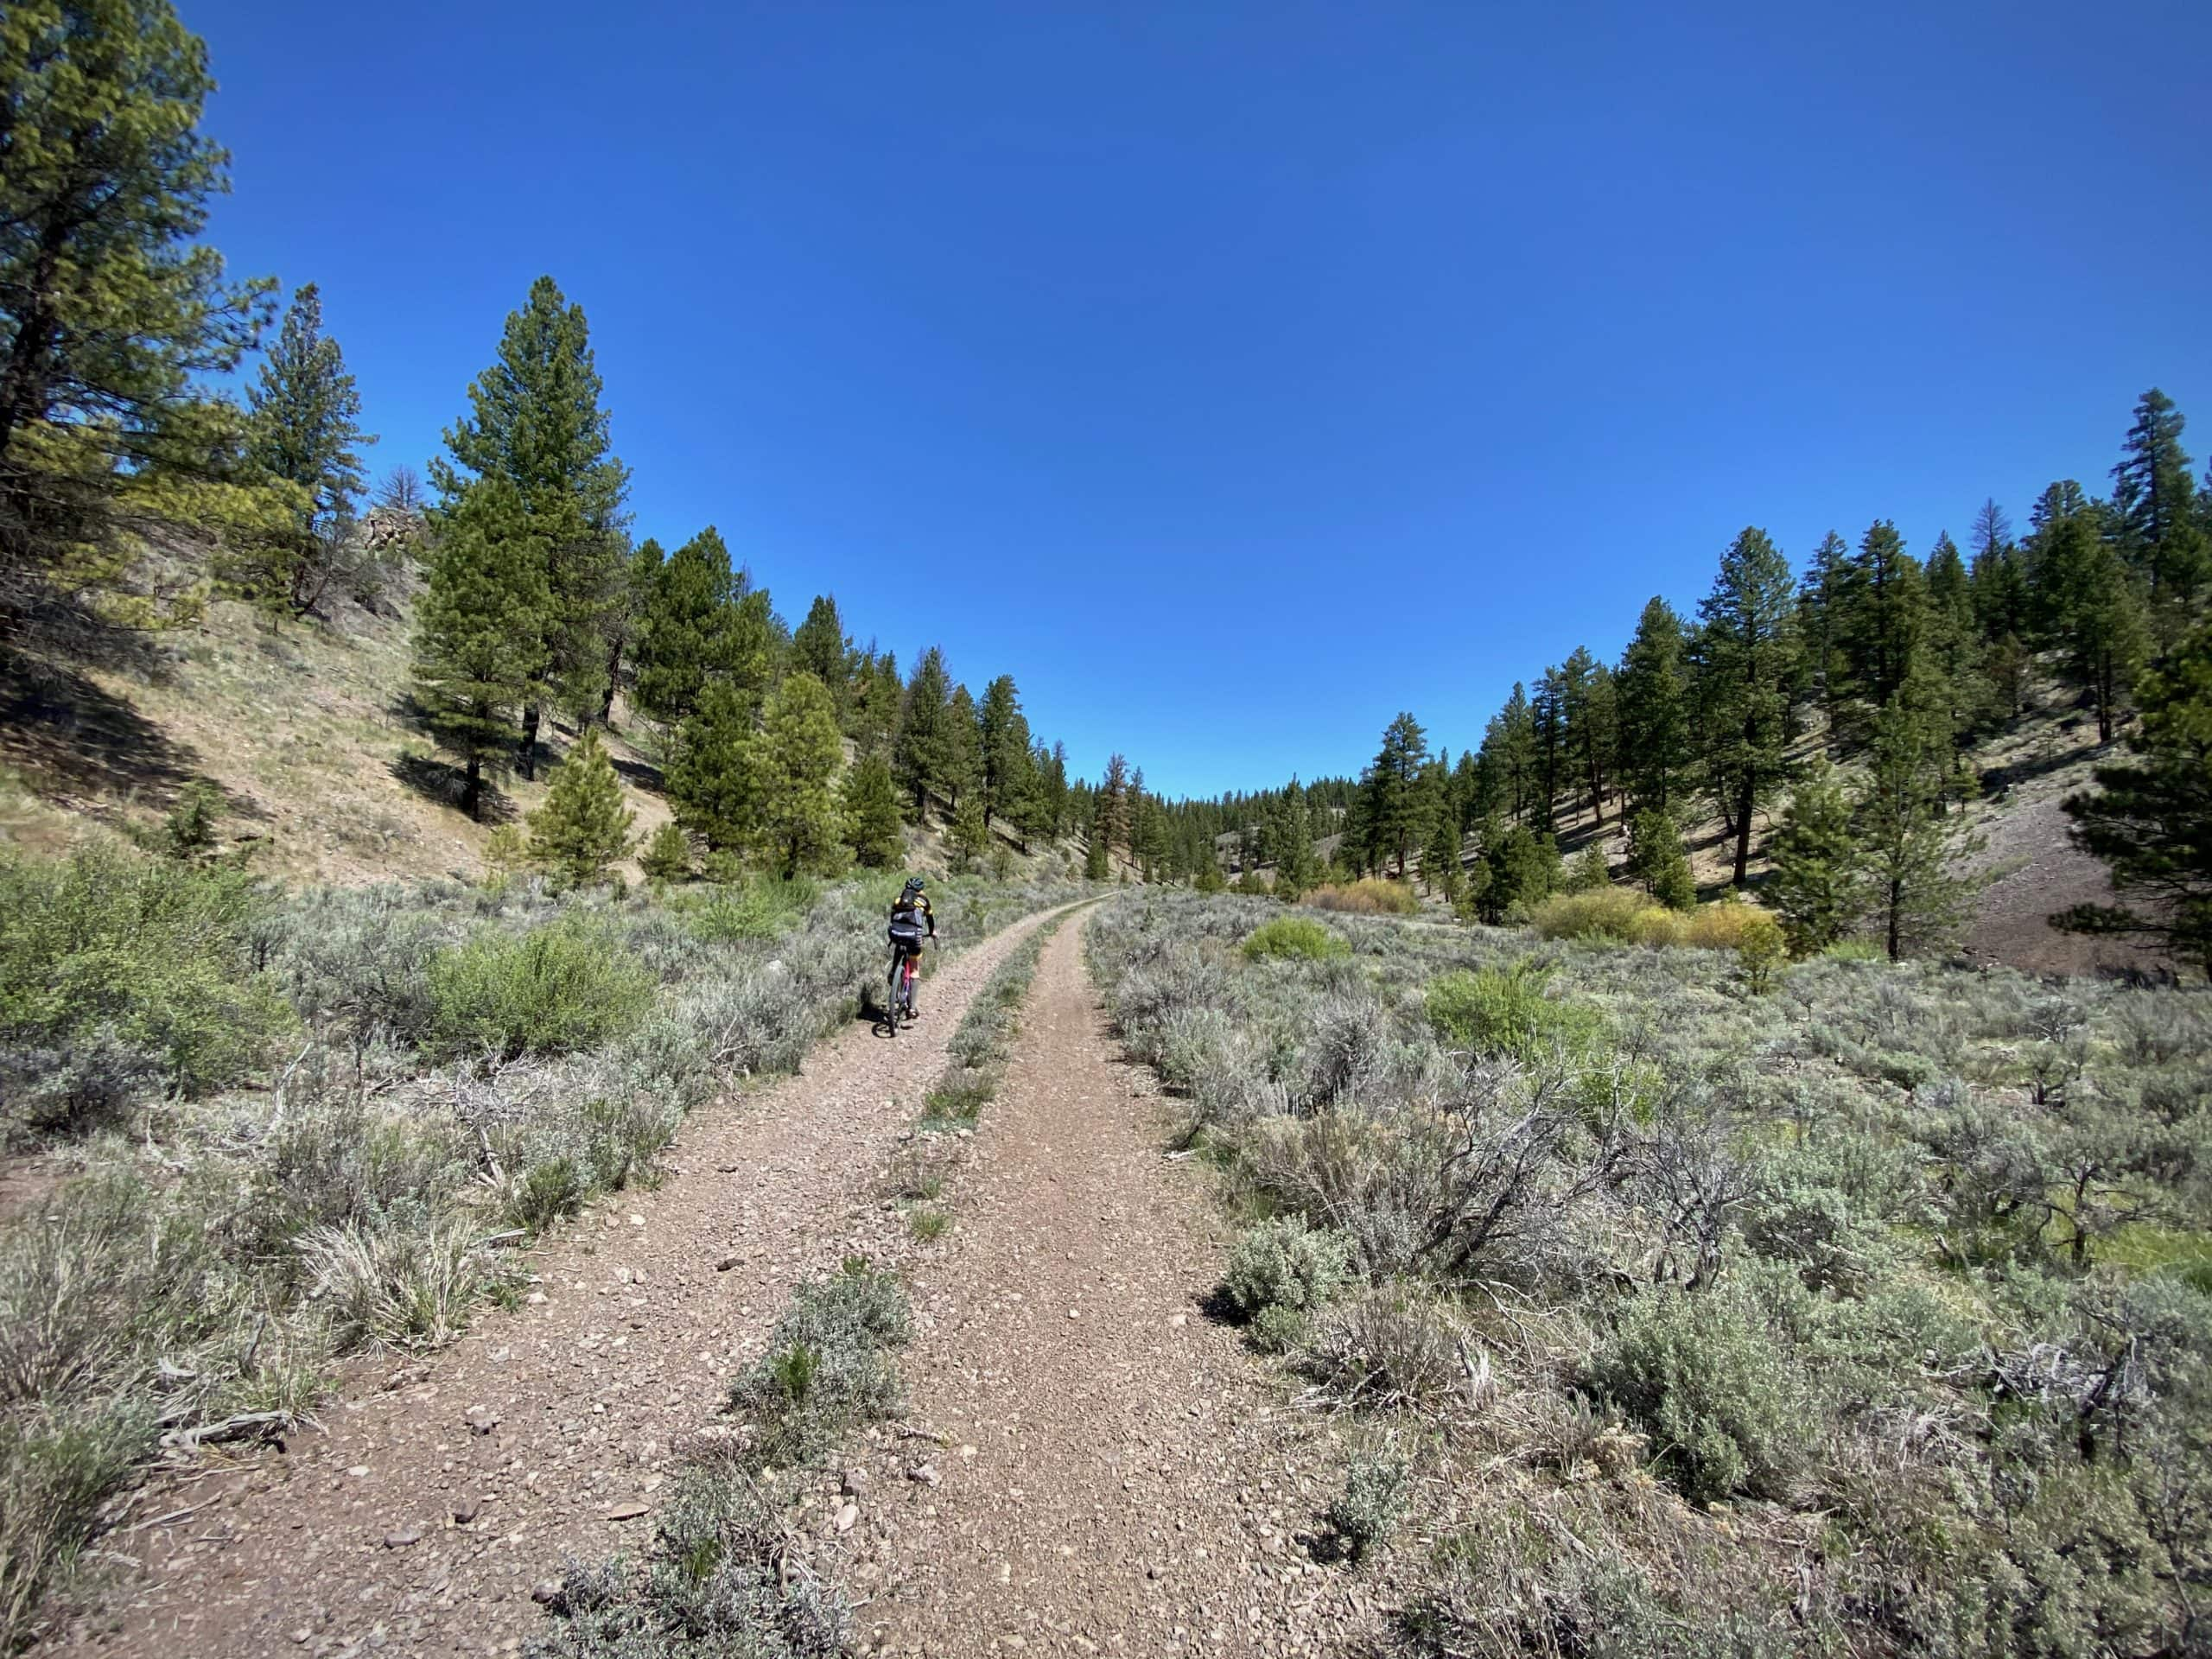 Gravel Girl on primitive forest service road in the Ochoco National Forest in Harney county.